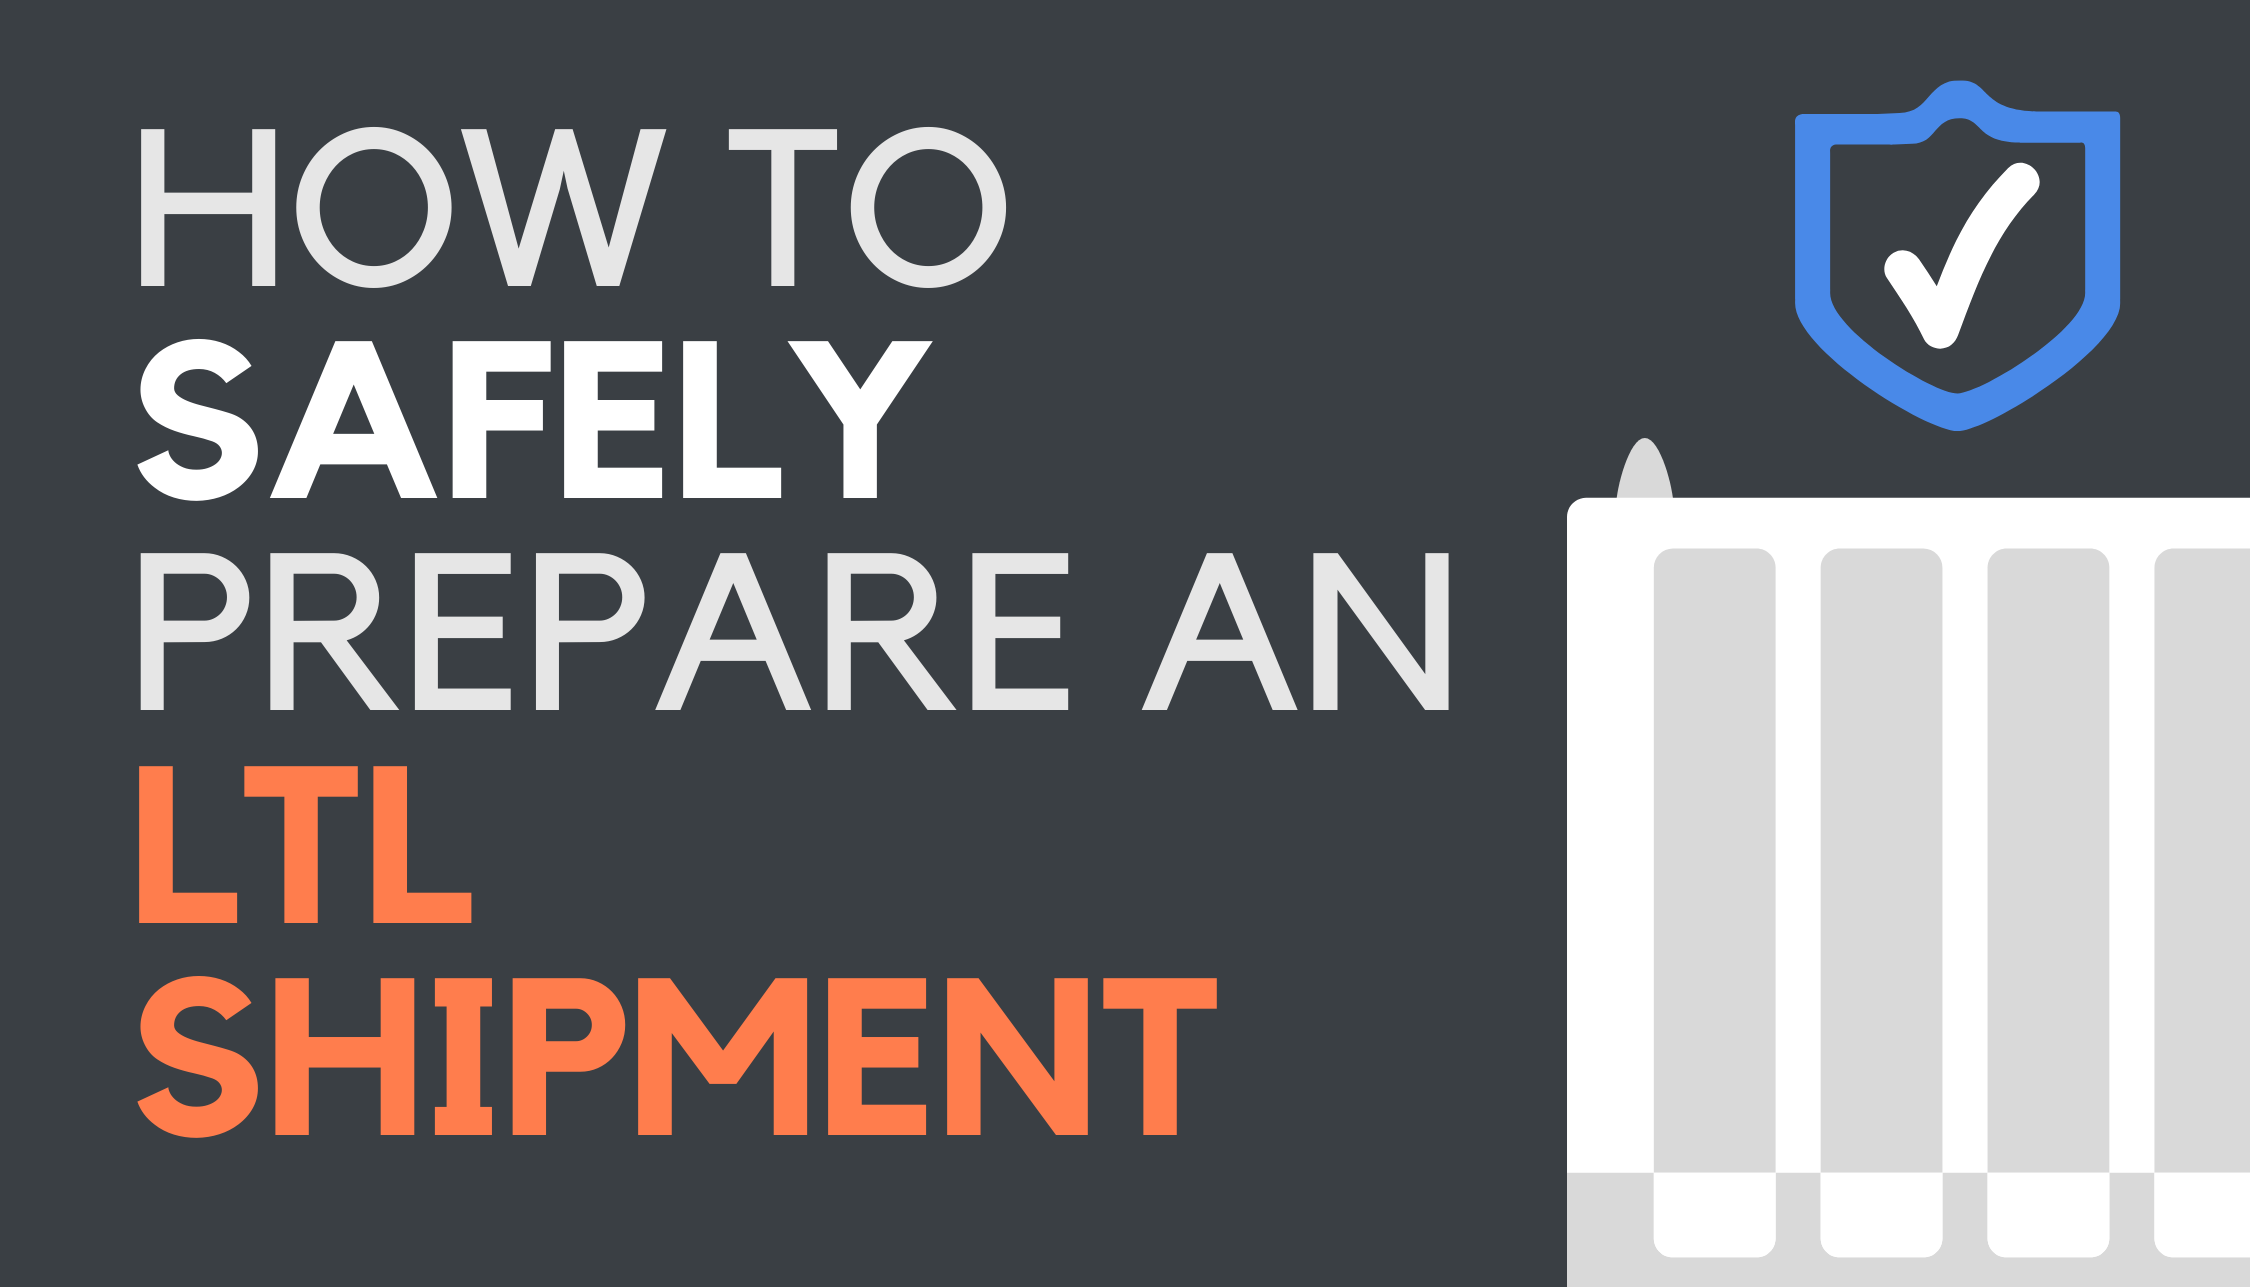 How to Safely Prepare an LTL Shipment